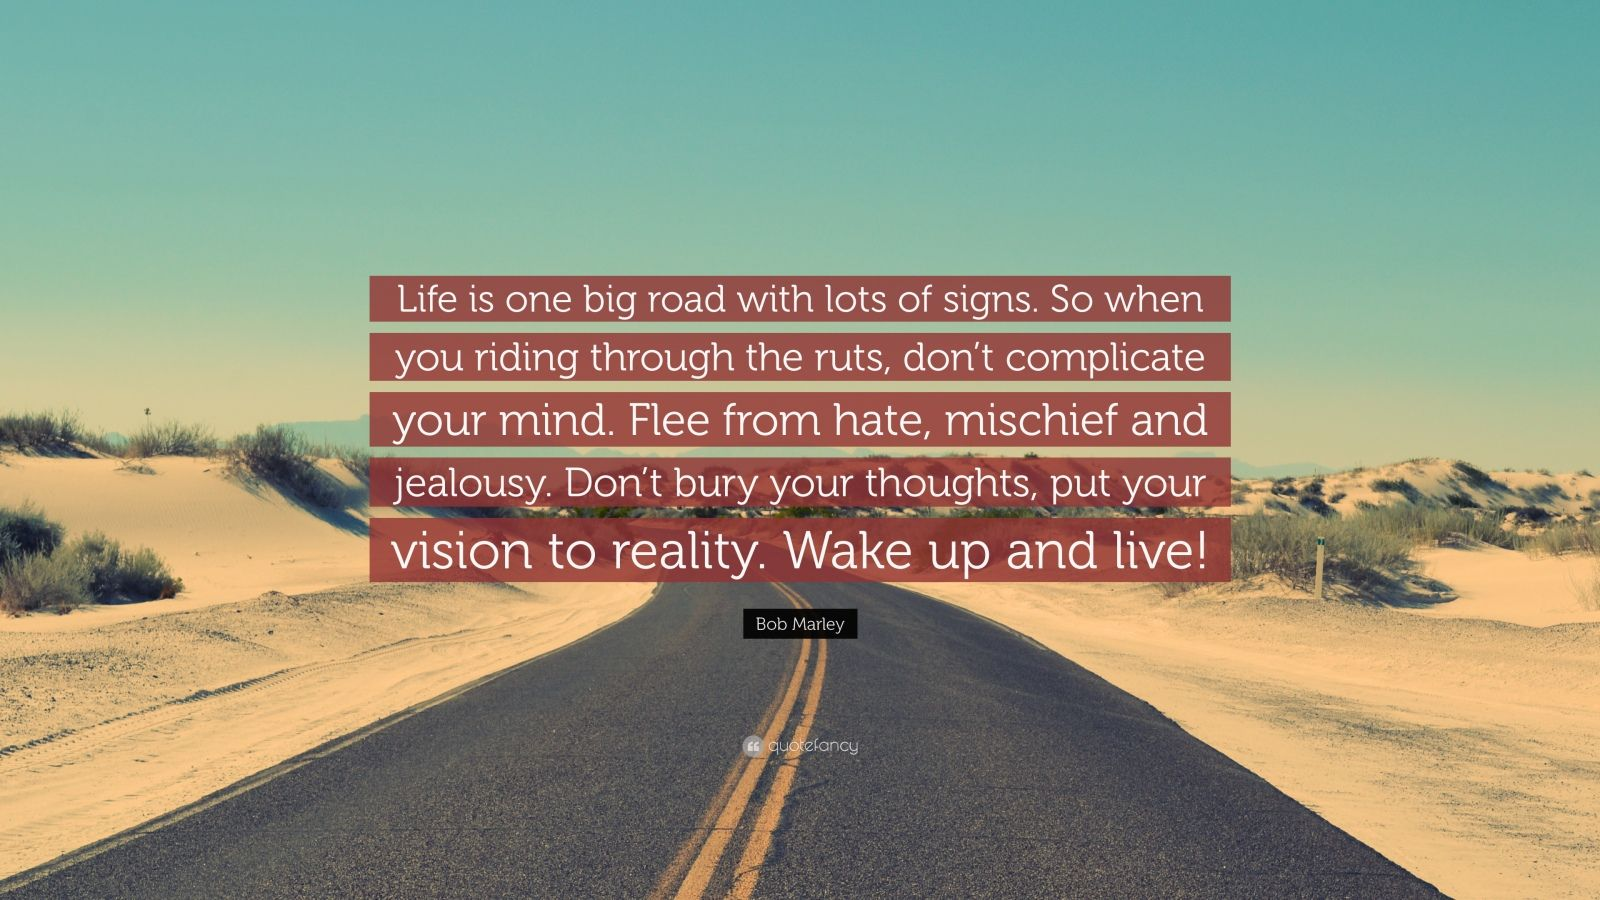 """Bob Marley Quote: """"Life is one big road with lots of signs. So when you riding through the ruts, don't complicate your mind. Flee from hate, mischief and jealousy. Don't bury your thoughts, put your vision to reality. Wake up and live!"""""""